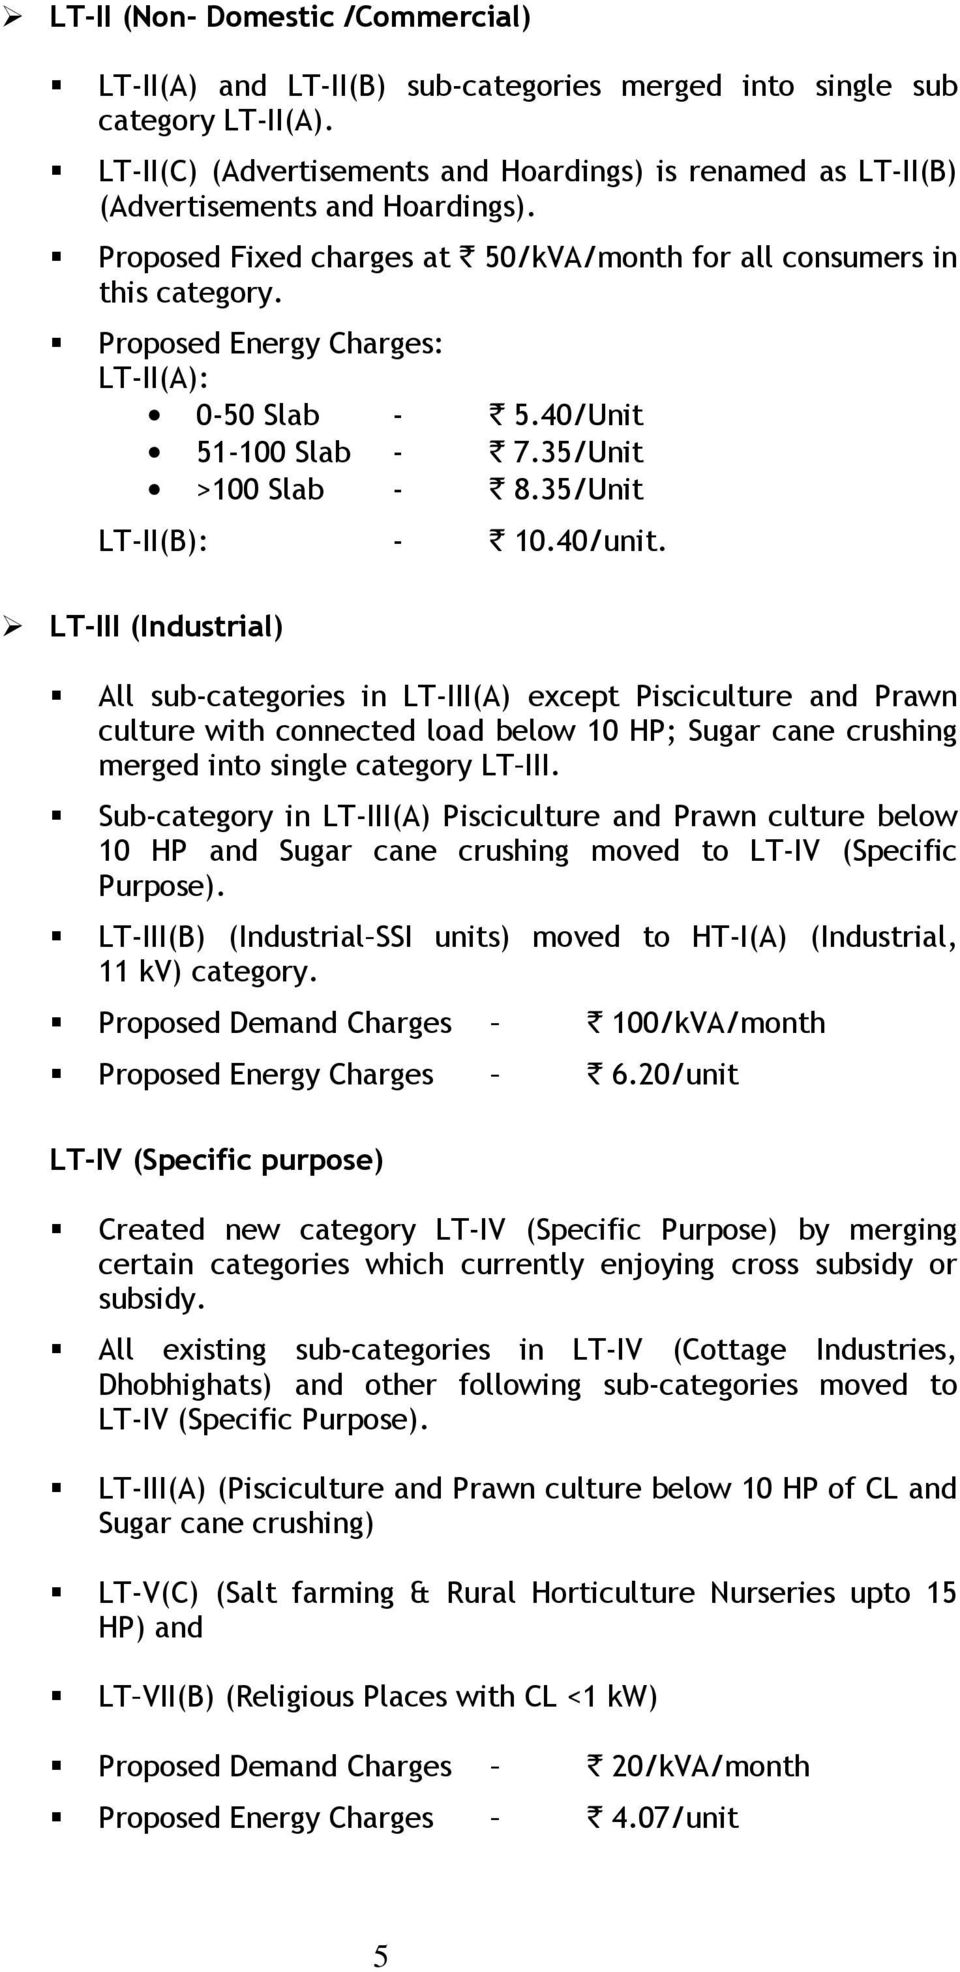 Proposed Energy Charges: LT-II(A): 0-50 Slab - ` 5.40/Unit 51-100 Slab - ` 7.35/Unit >100 Slab - ` 8.35/Unit LT-II(B): - ` 10.40/unit.